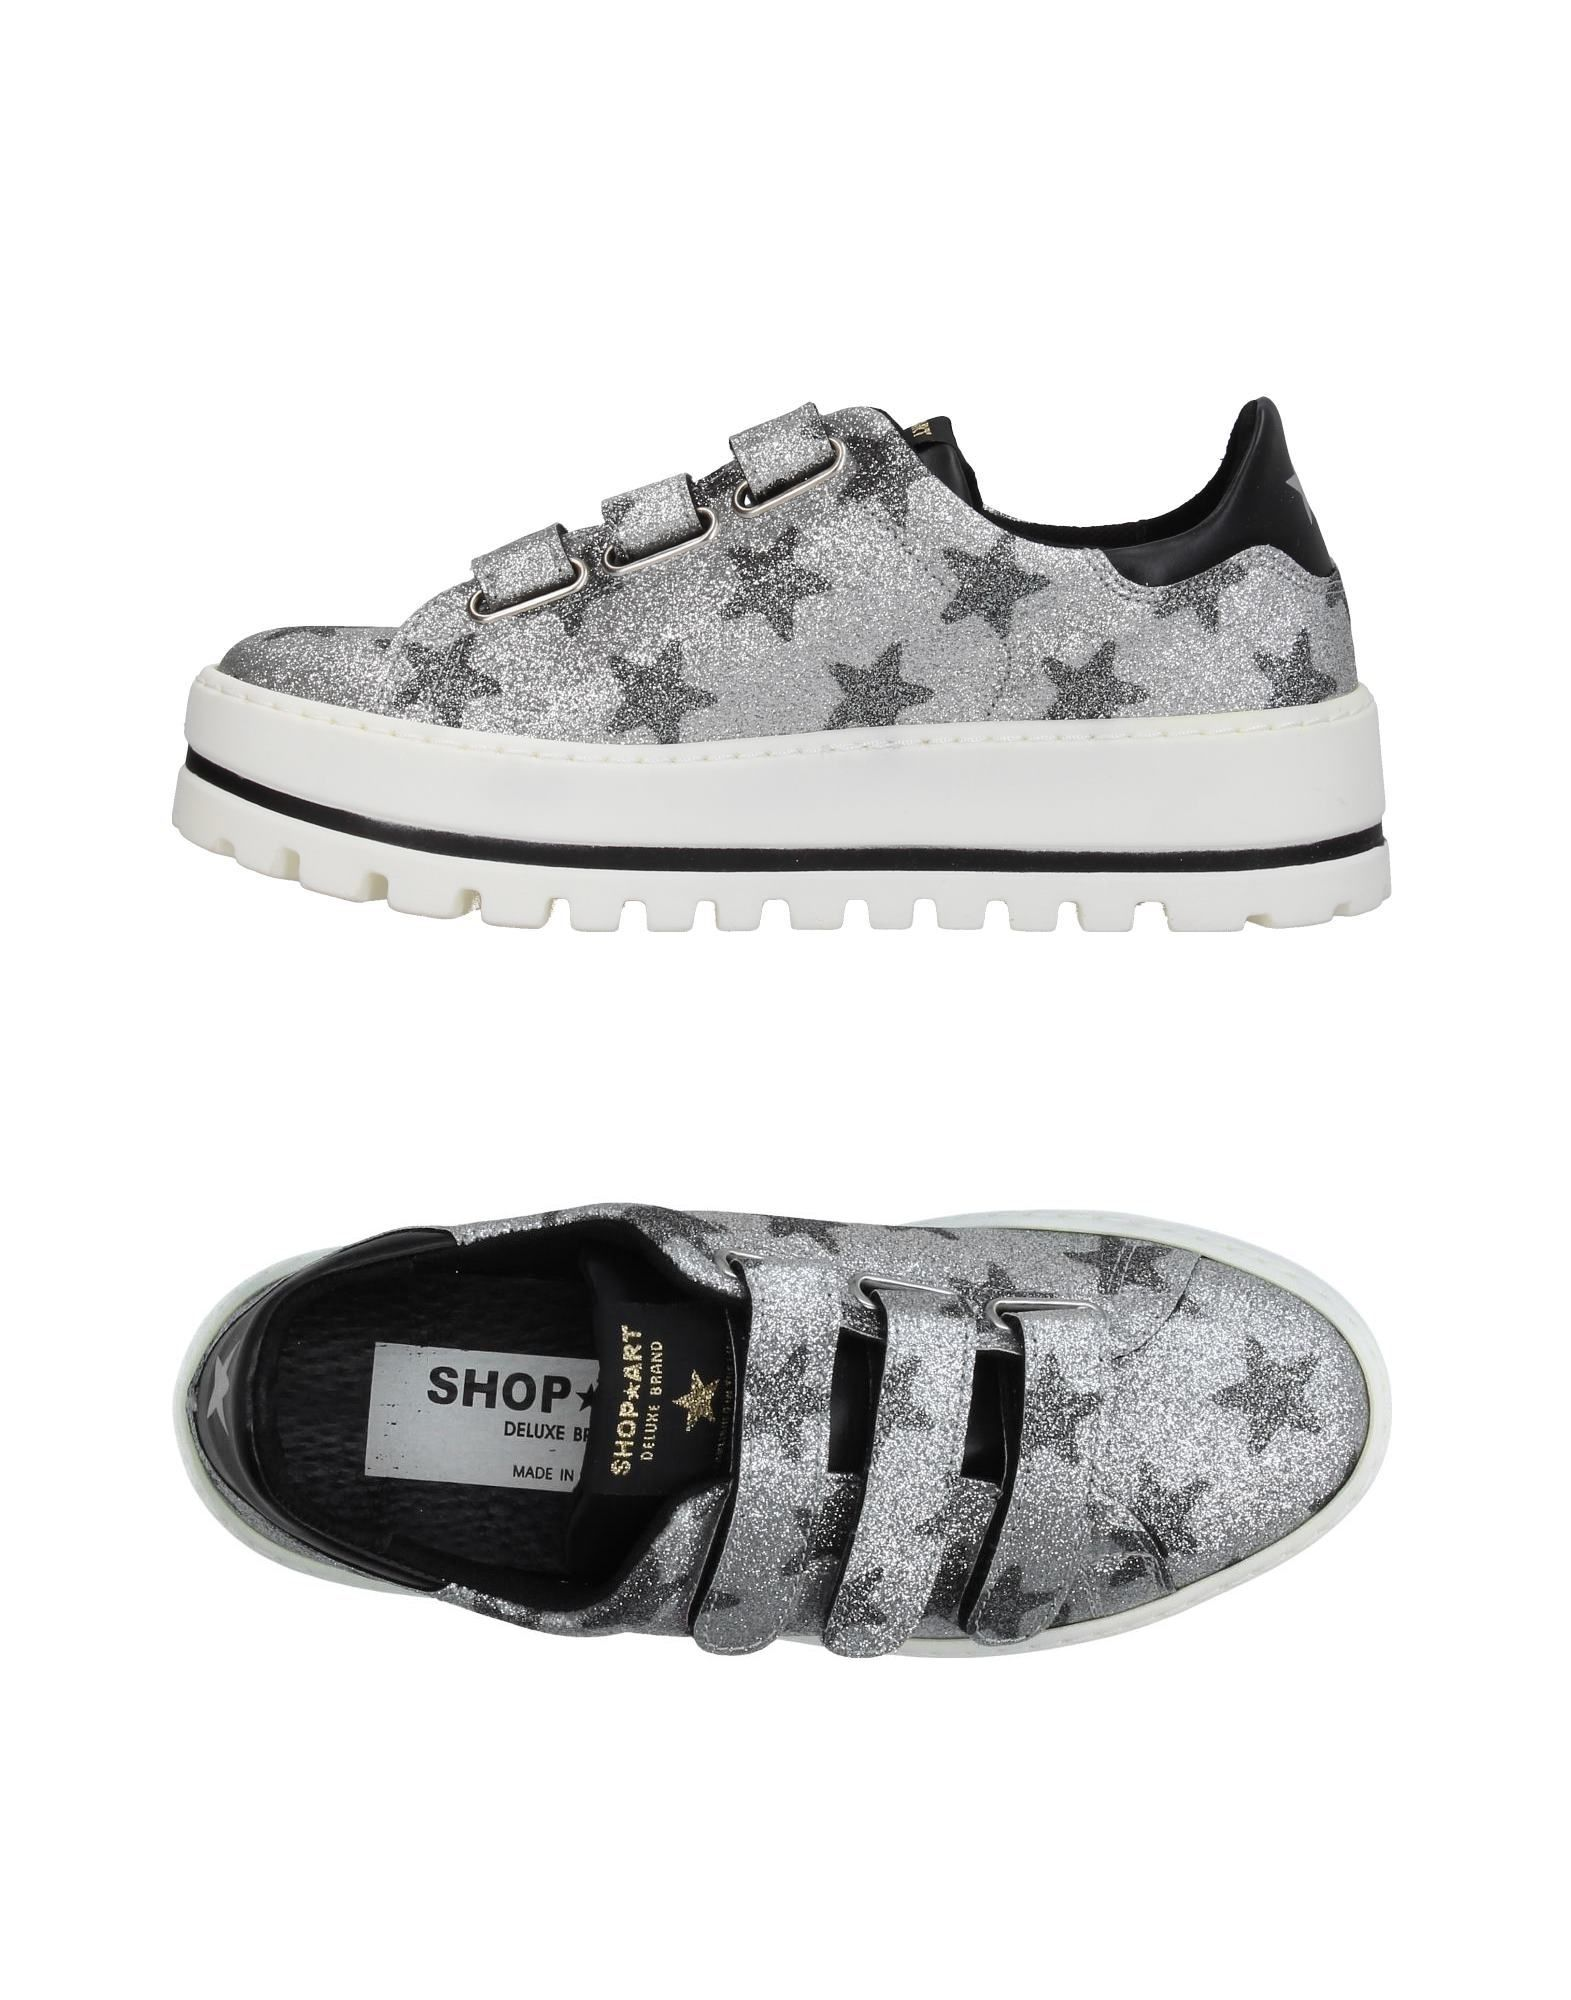 Sneakers Shop ★ Art Donna - 11359176TT